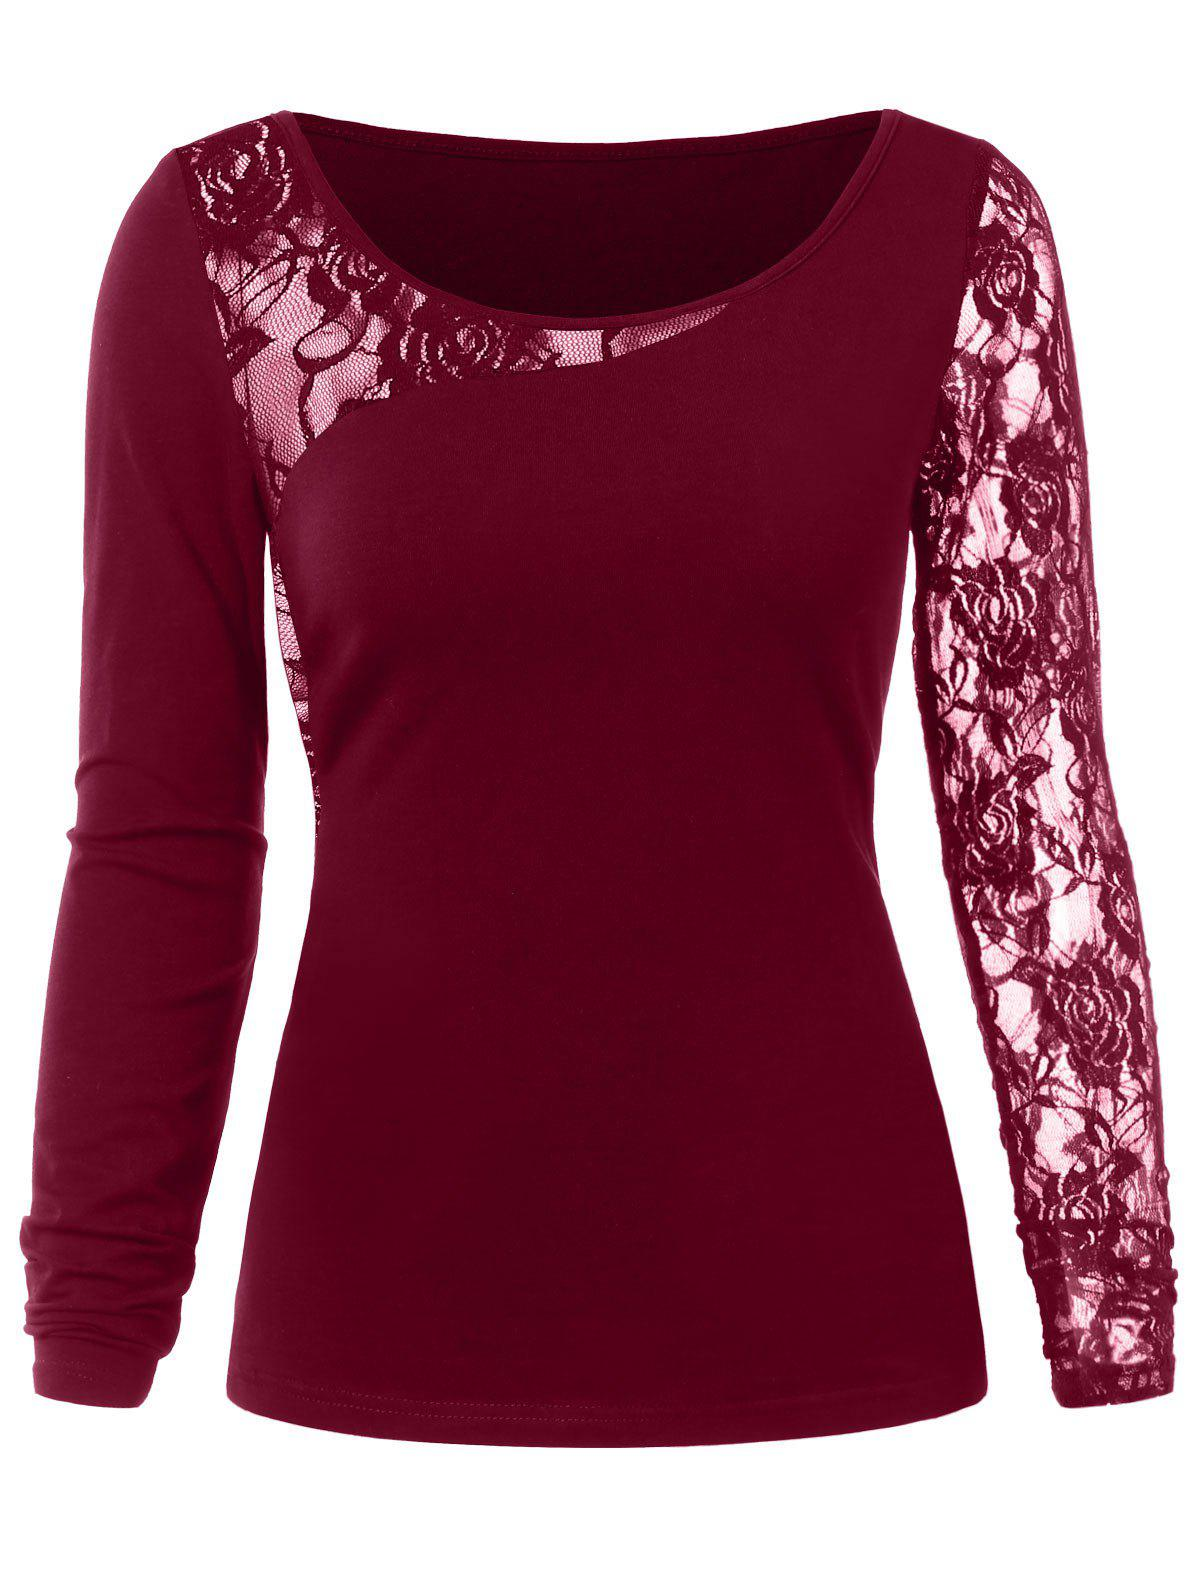 Latest Floral Lace Insert Tee